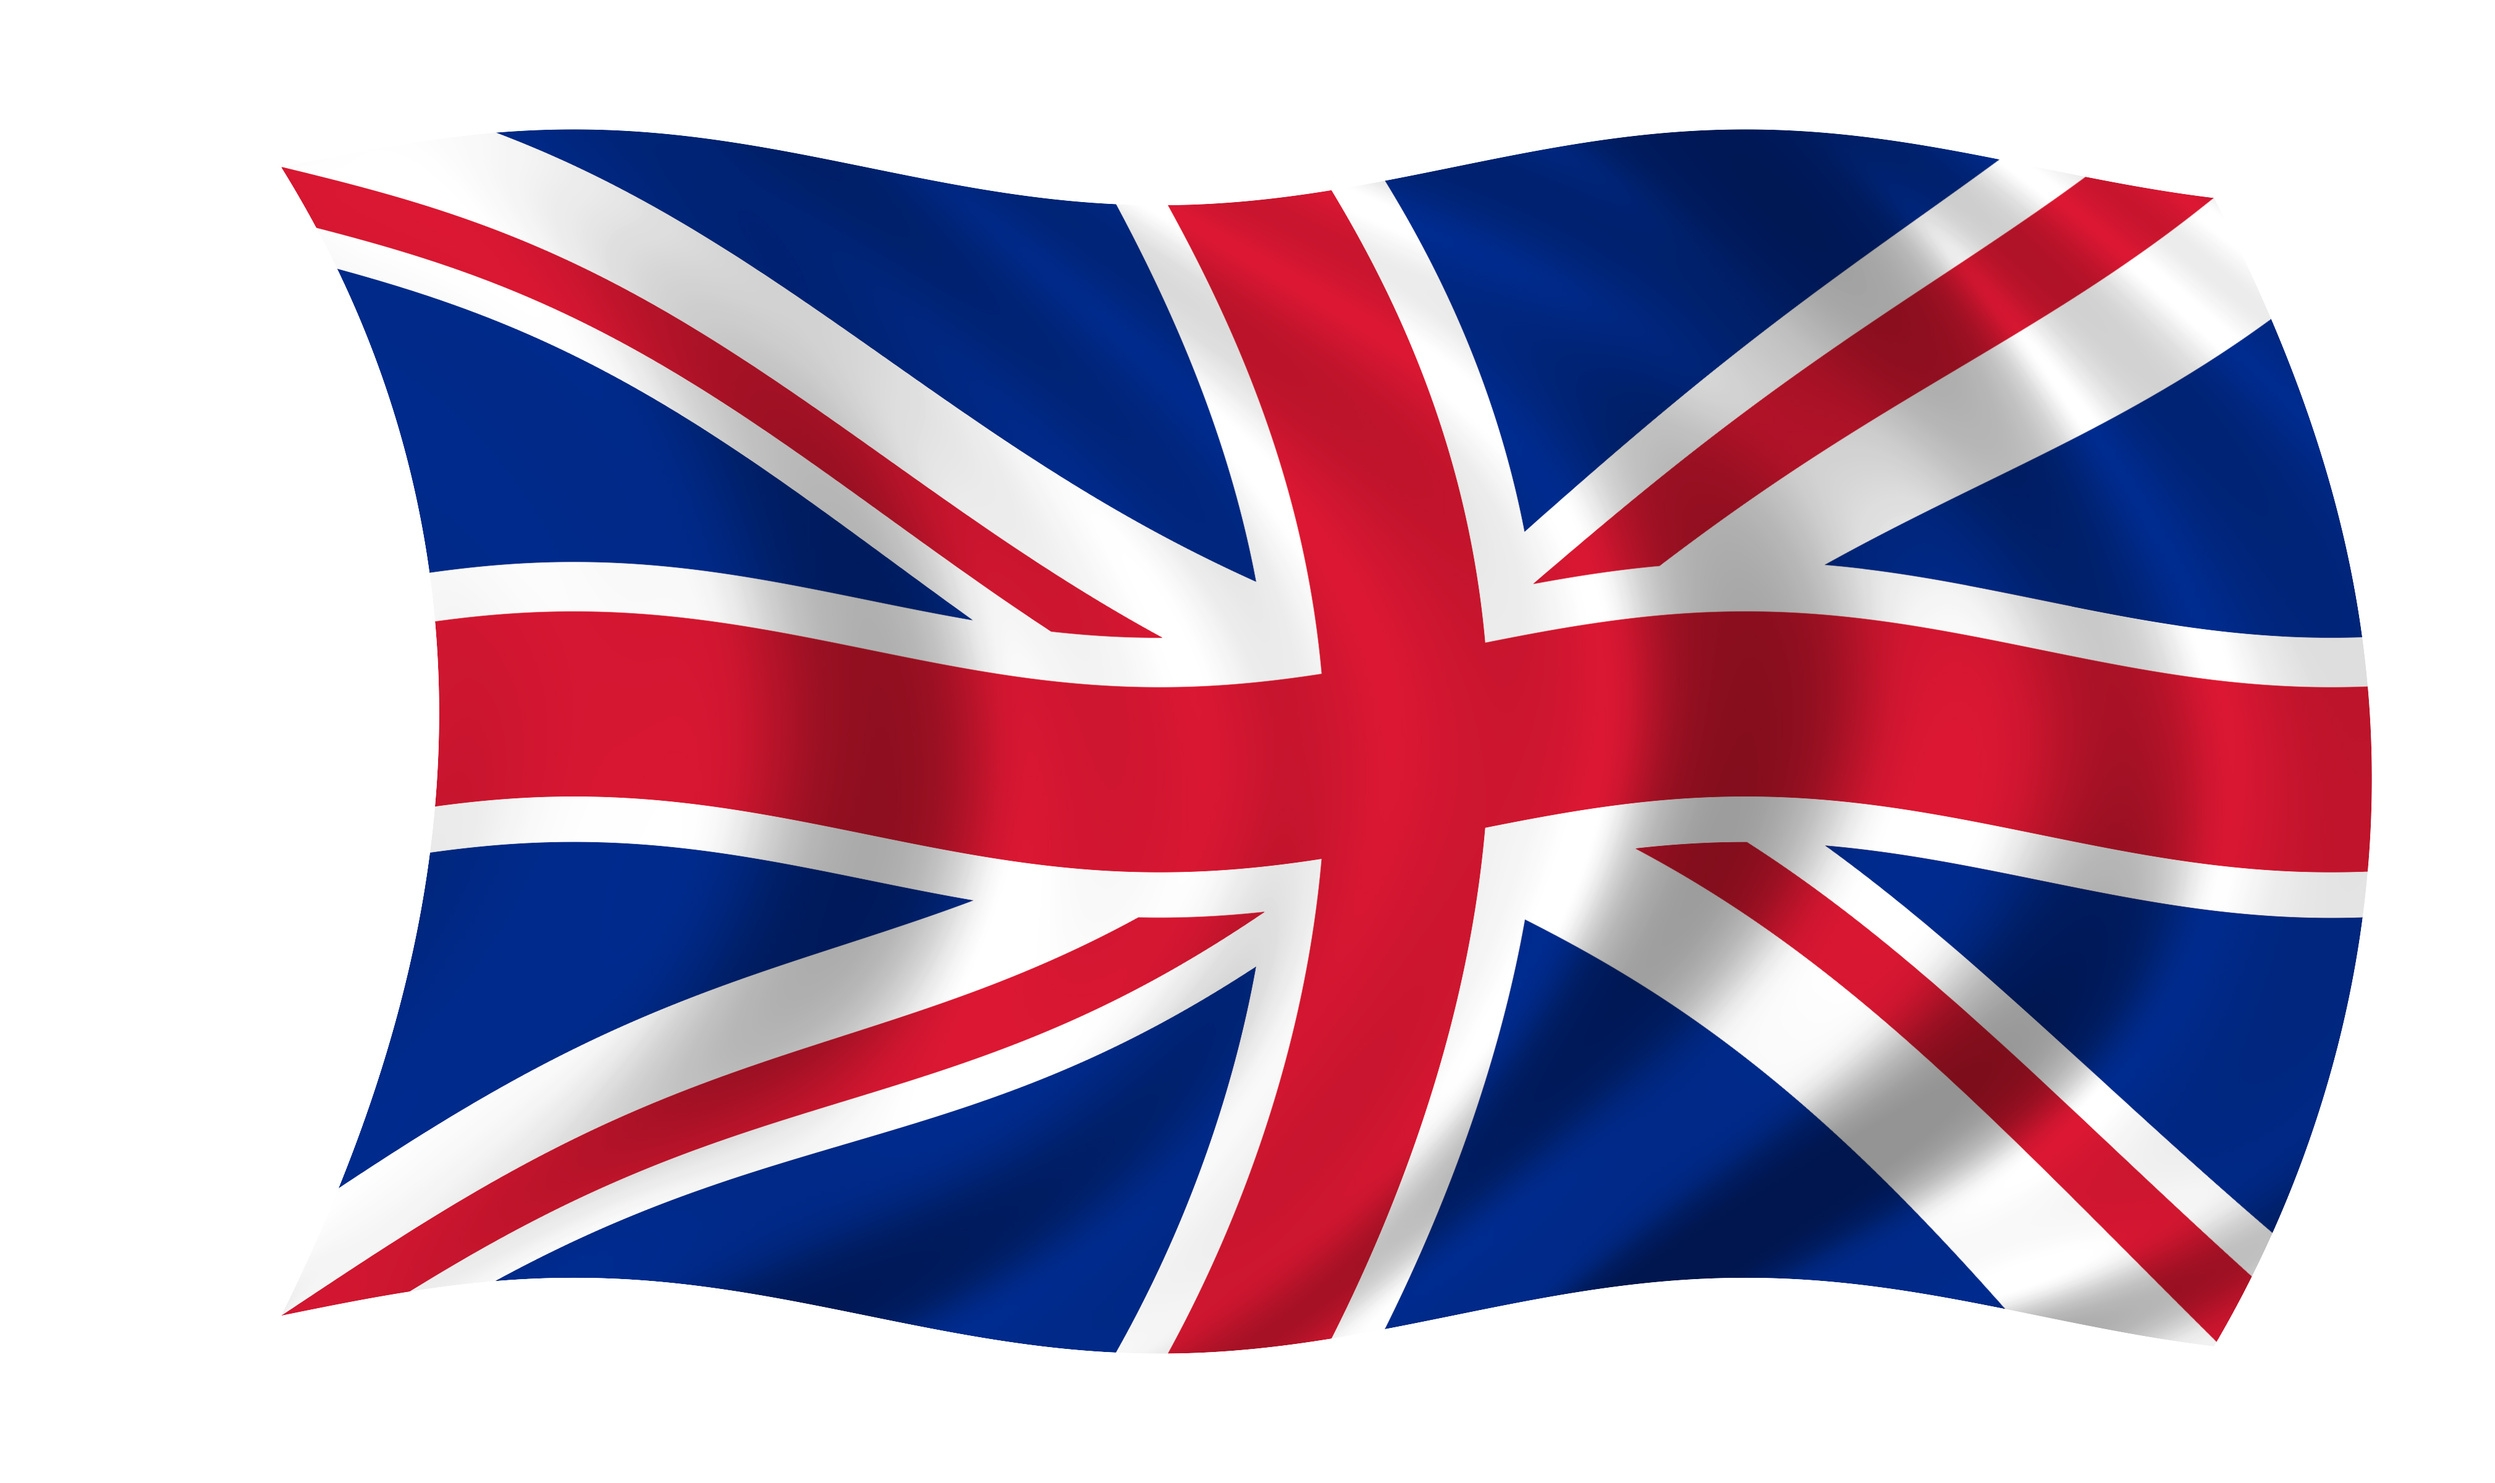 British flag free clipart clipart royalty free library Free UK Flag Cliparts, Download Free Clip Art, Free Clip Art on ... clipart royalty free library